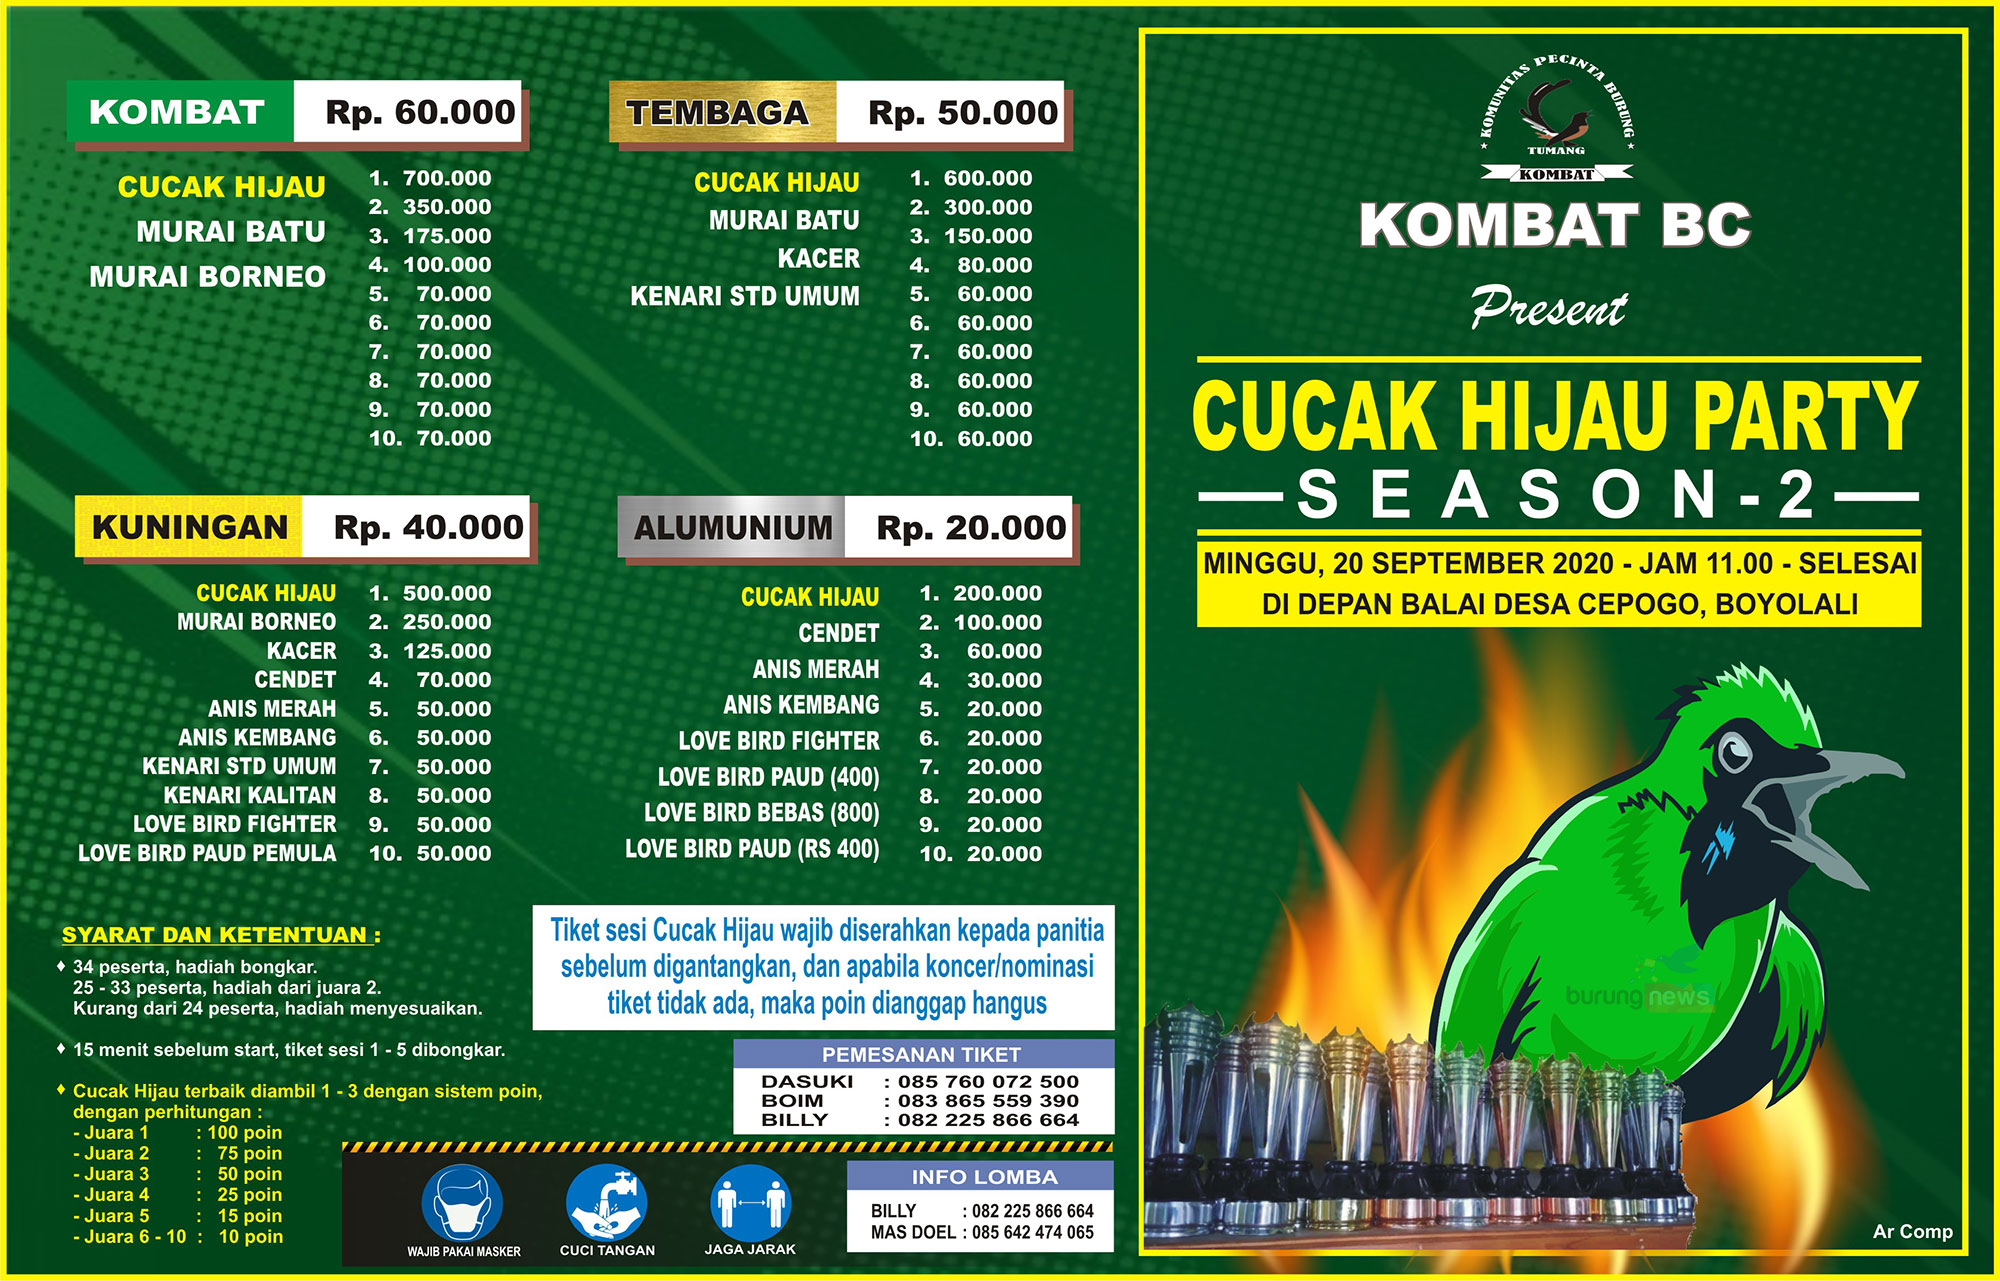 BROSUR CUCAK HIJAU PARTY SEASON 2